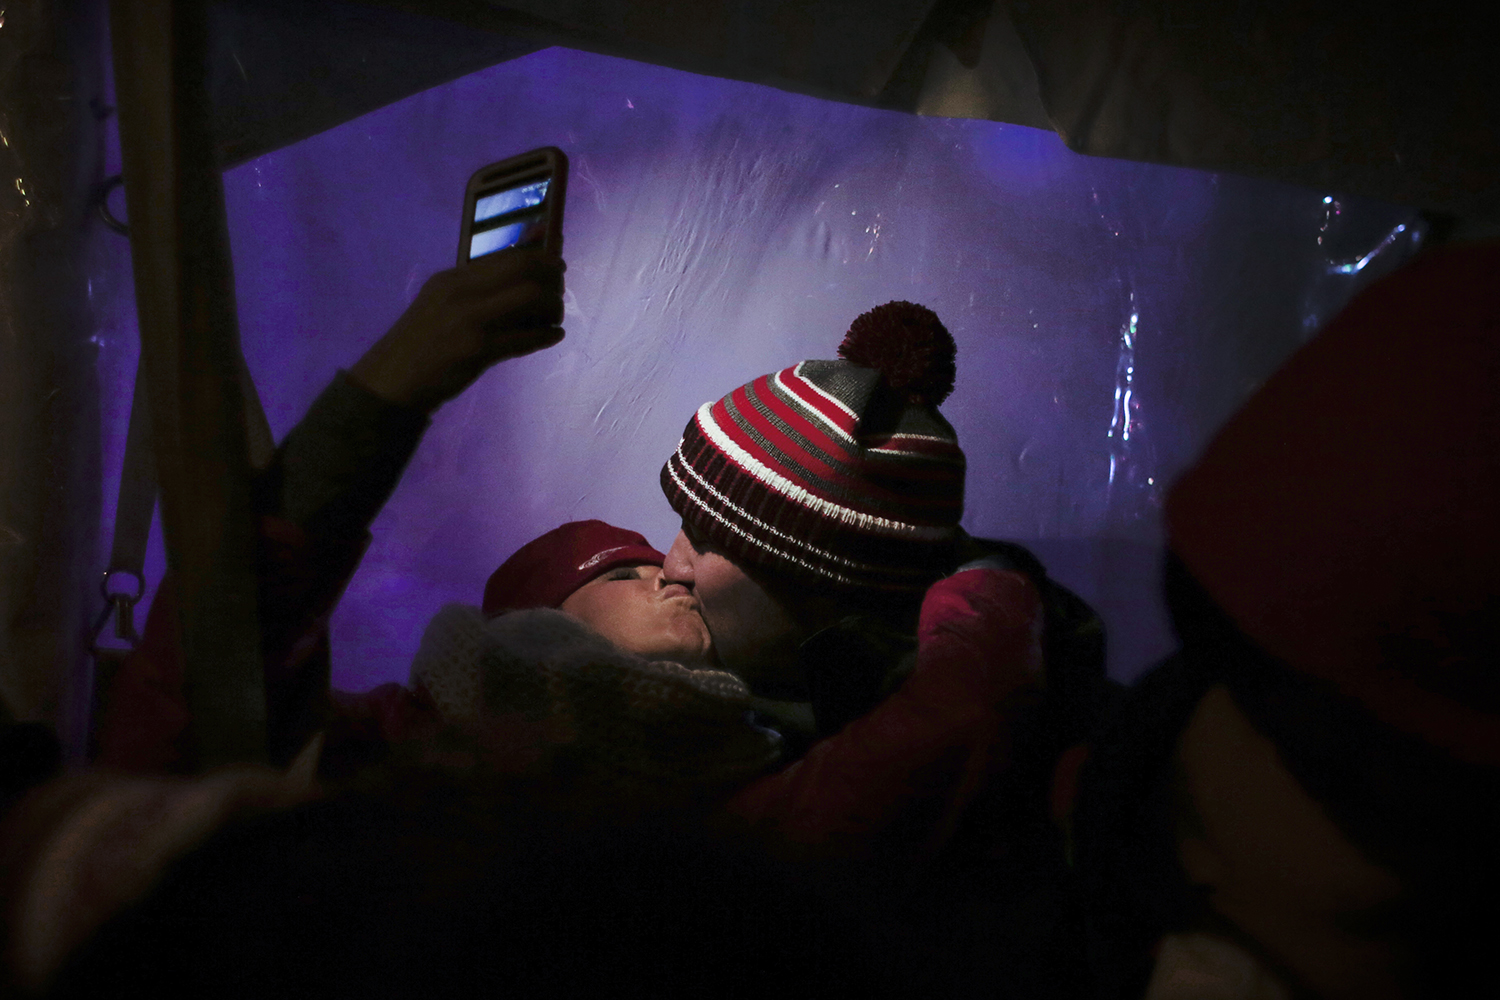 Kelly Davidoff from Nelson, British Columbia, Canada takes a photo of herself kissing Adam Polnik from Chicago after the stroke of midnight on New Year's Eve on Wednesday, Dec. 31, 2014 in Cadillac Square in Detroit. Tim Galloway/Special to DFP